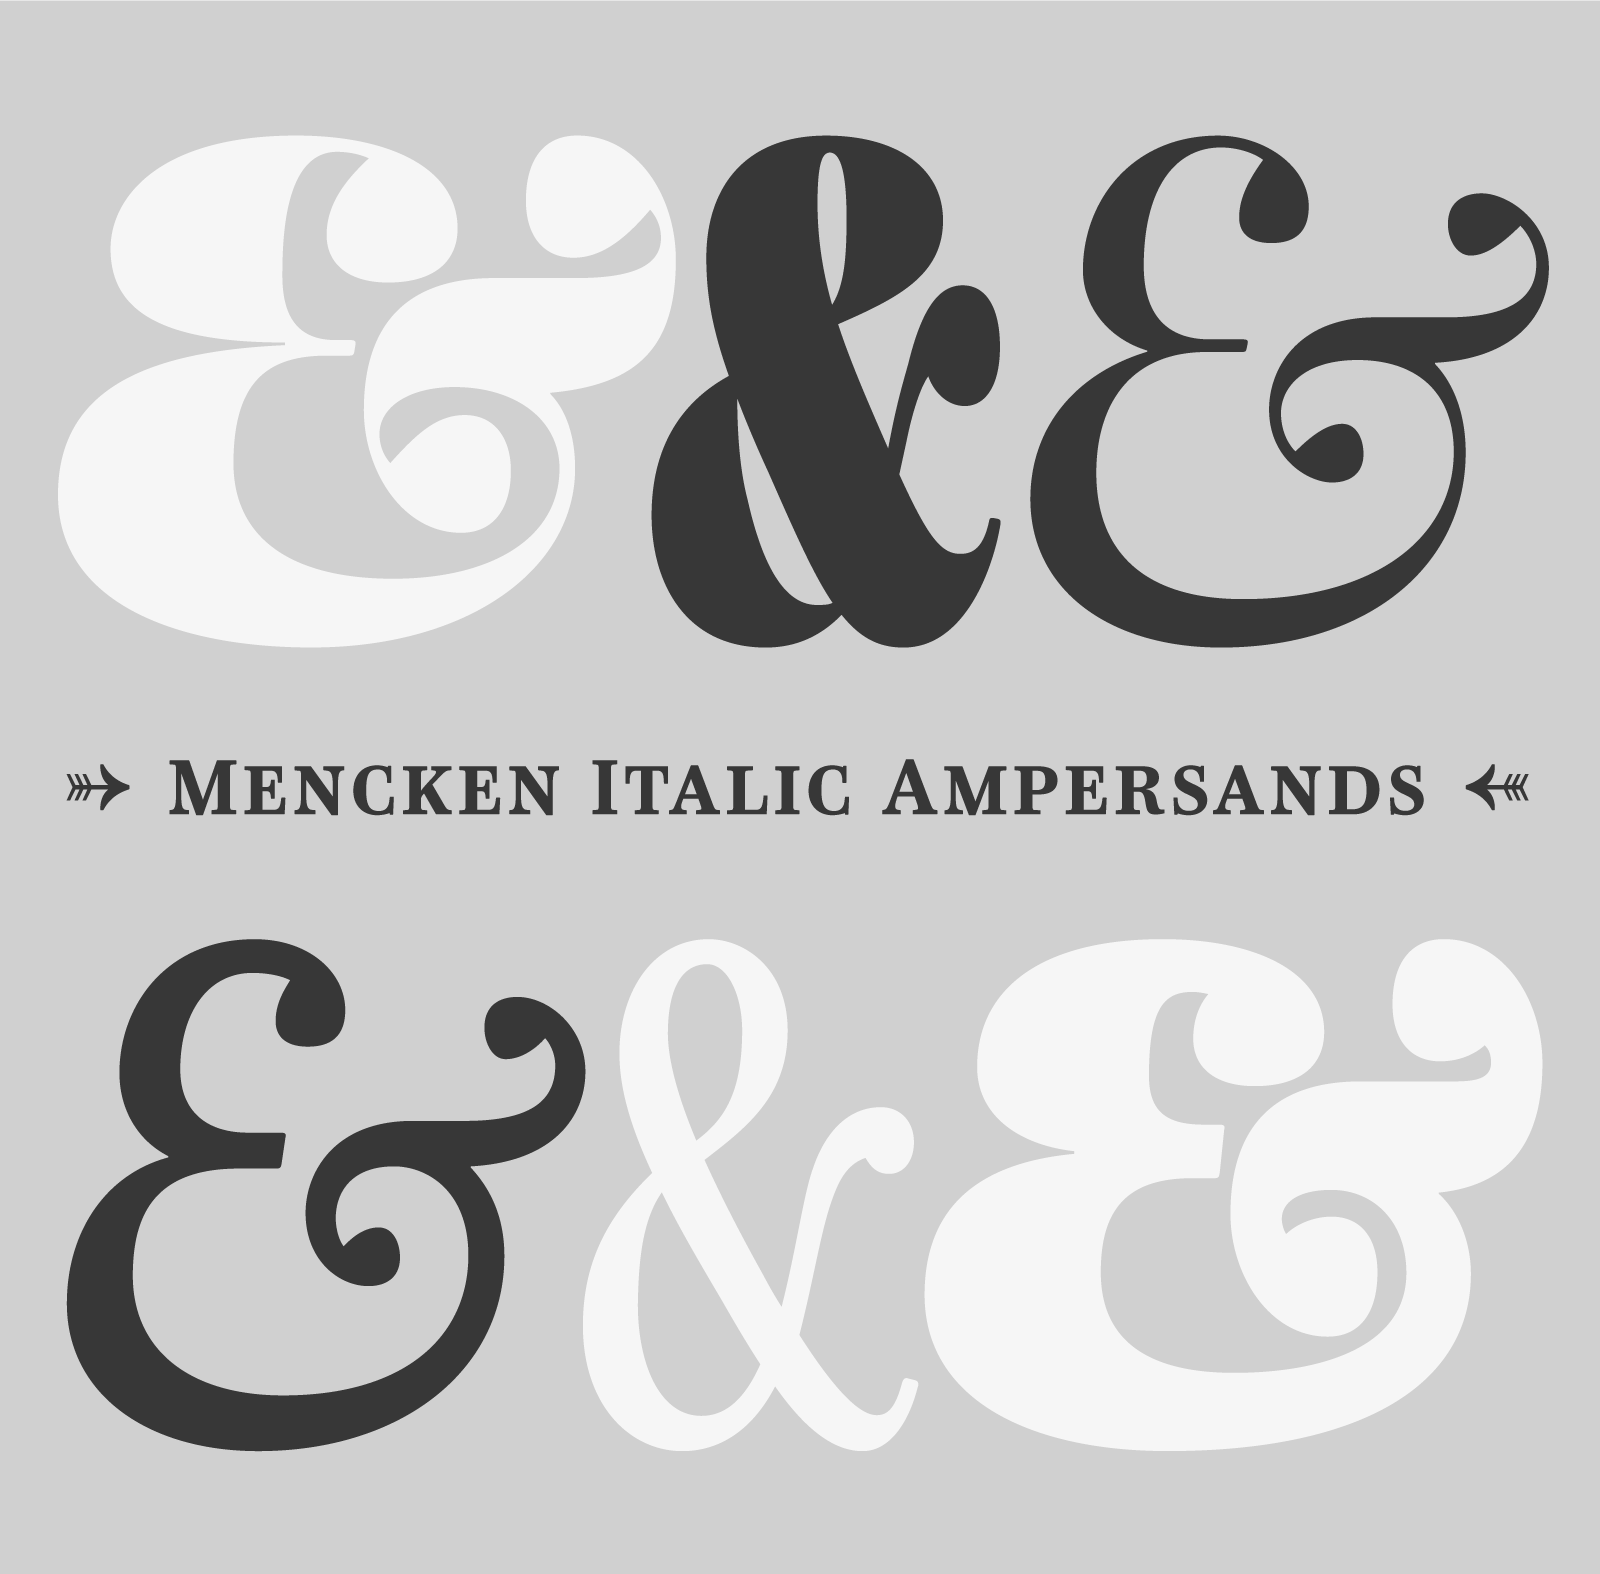 Ambroise, designed by Jean Francois Porchez for Typofonderie